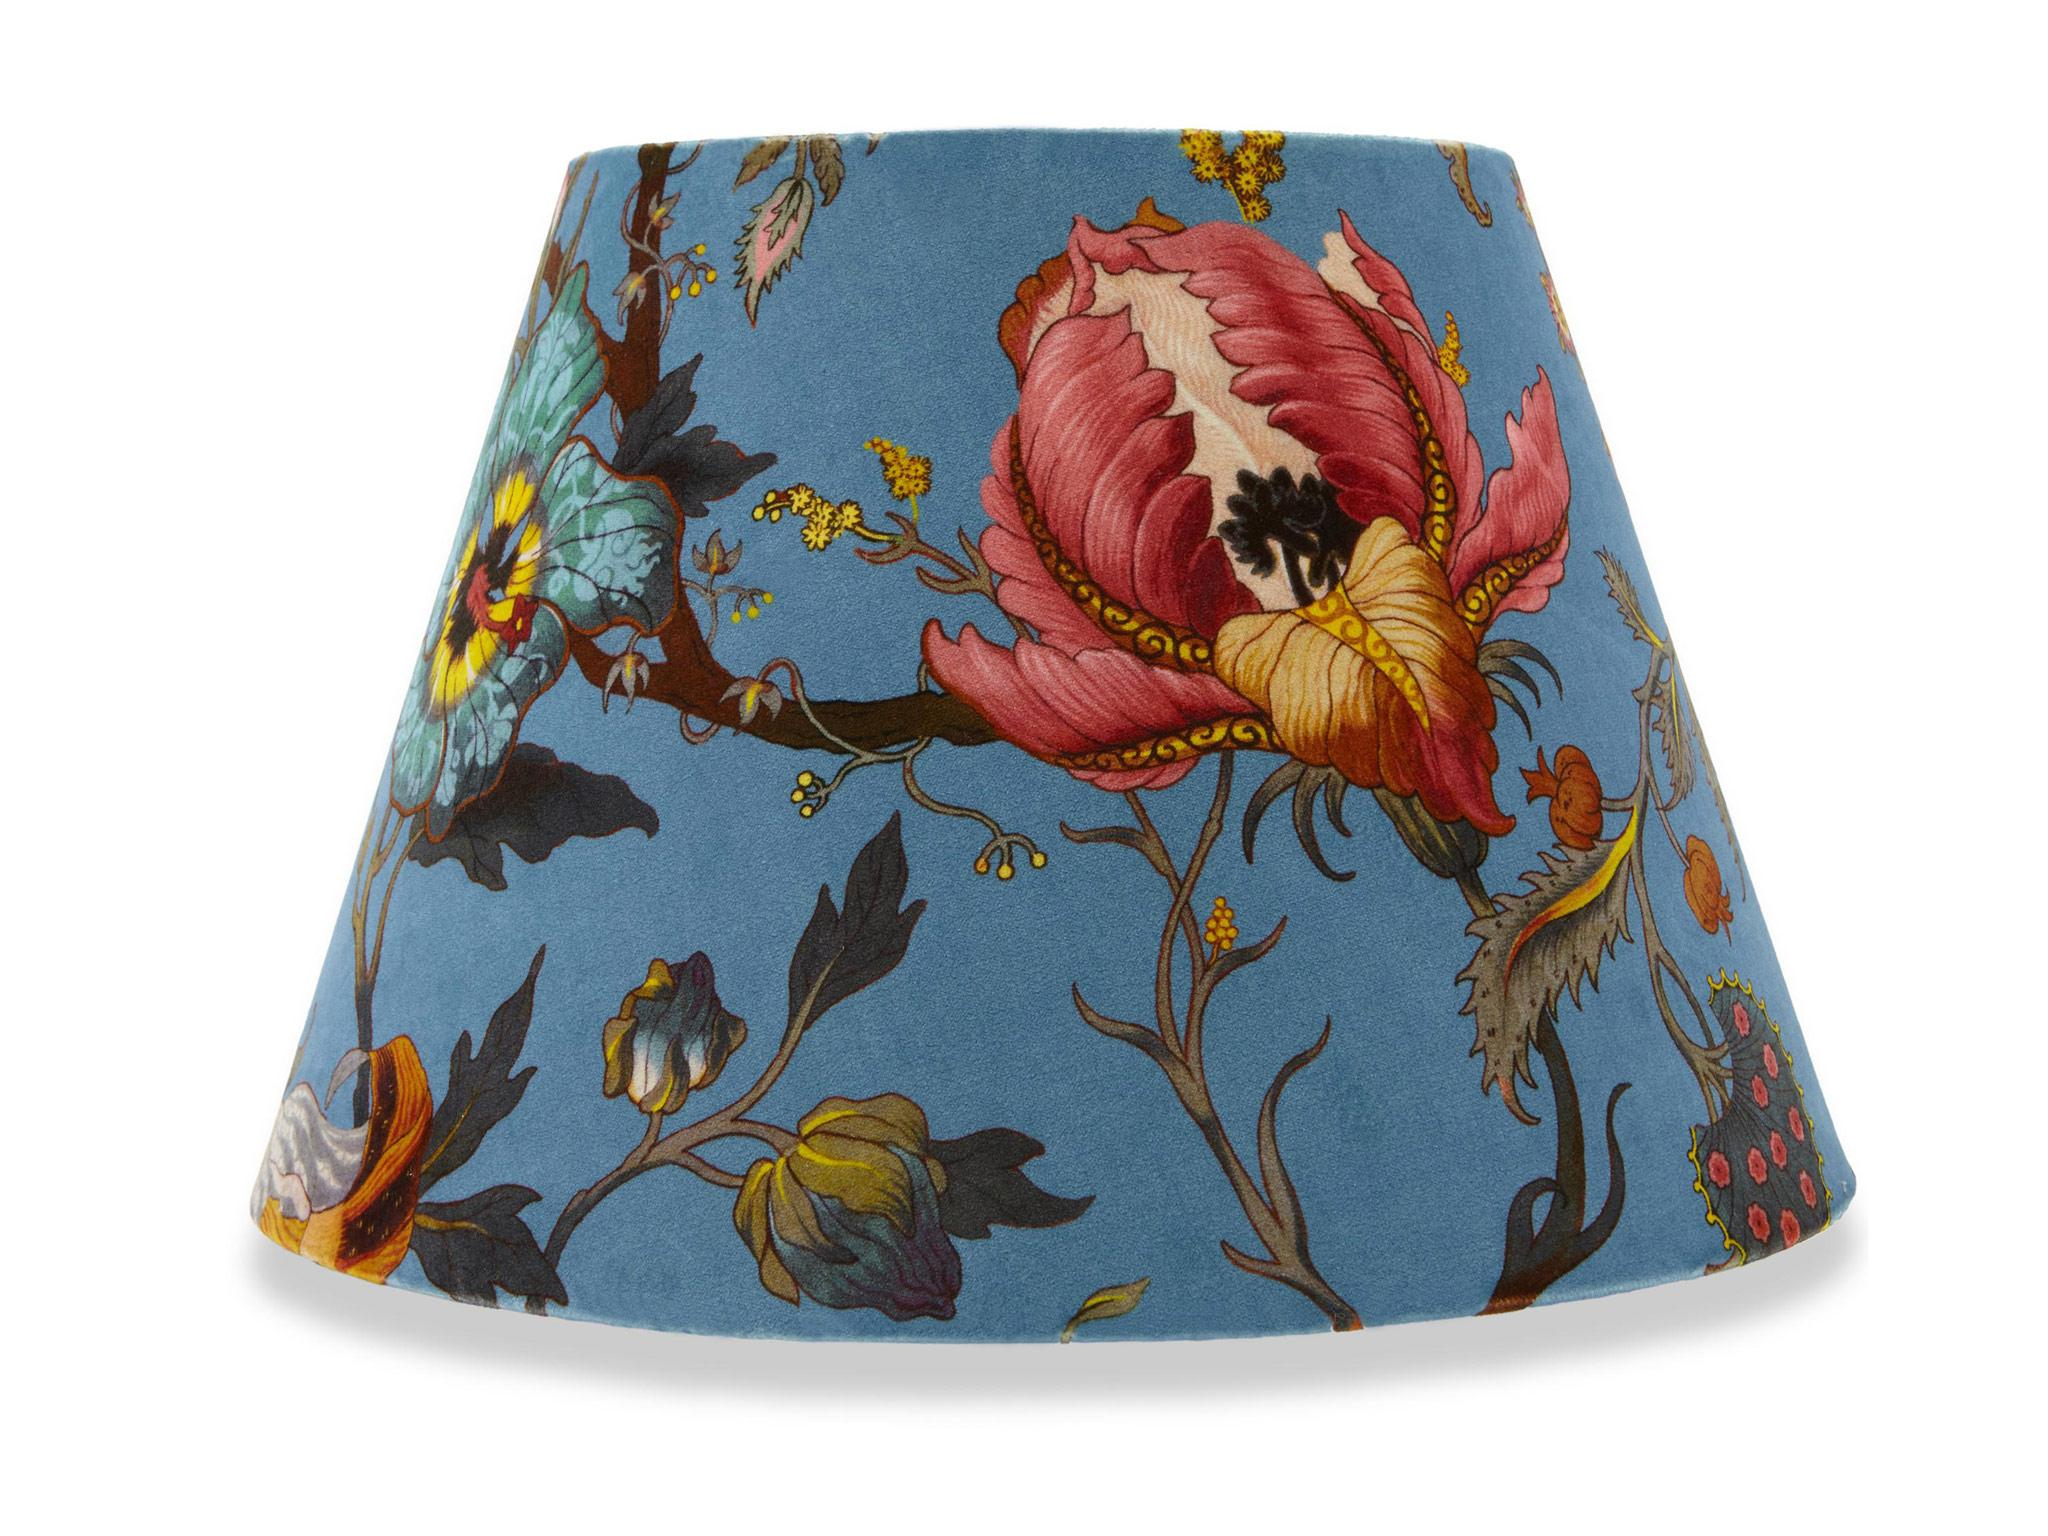 10 best lampshades | The Independent